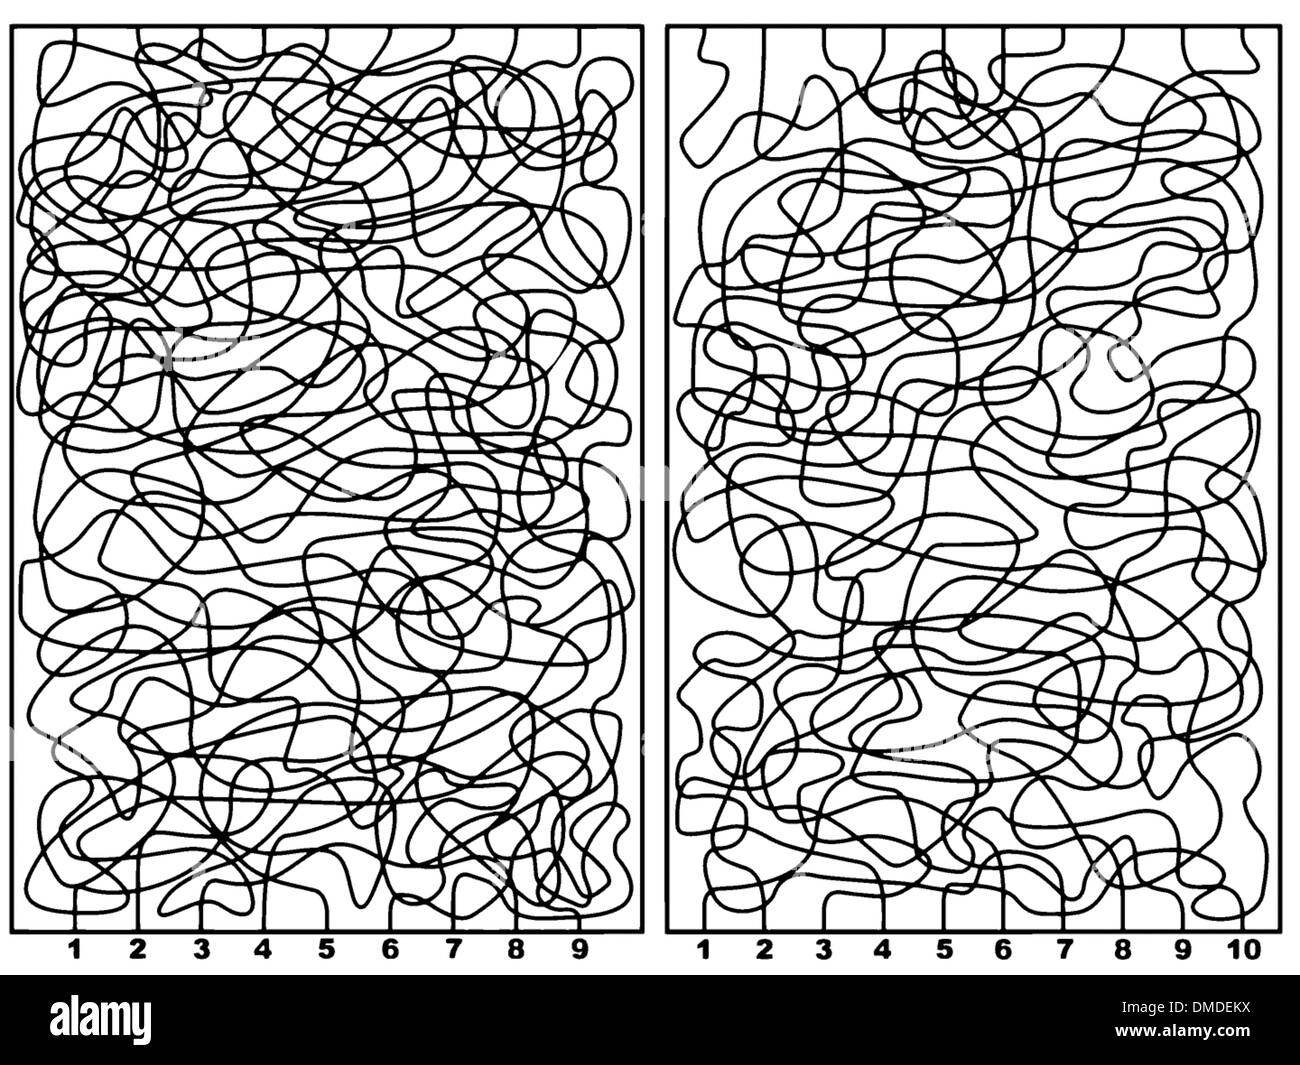 Two labyrinths - Stock Image